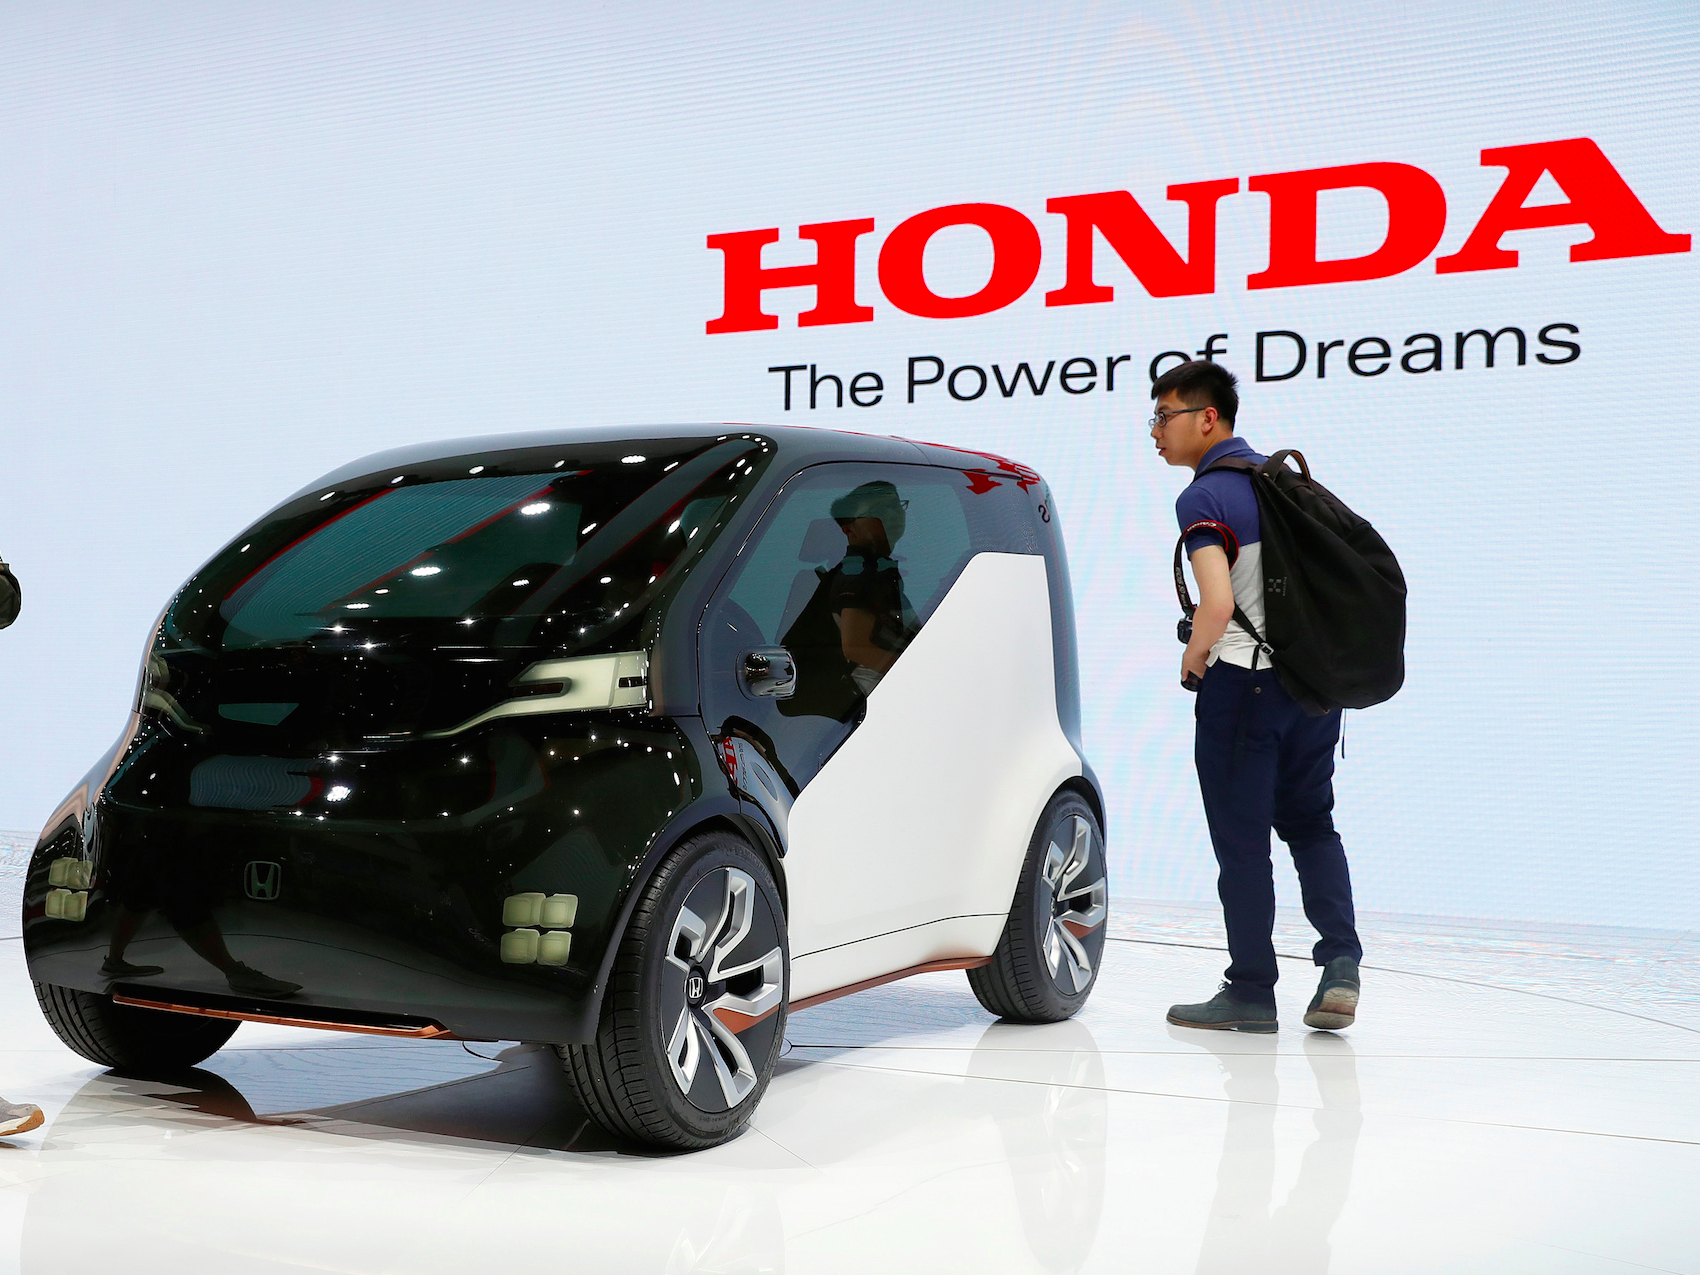 honda-is-firing-back-at-tesla-and-other-automakers-by-rolling-out-2-electric-cars-by-2018